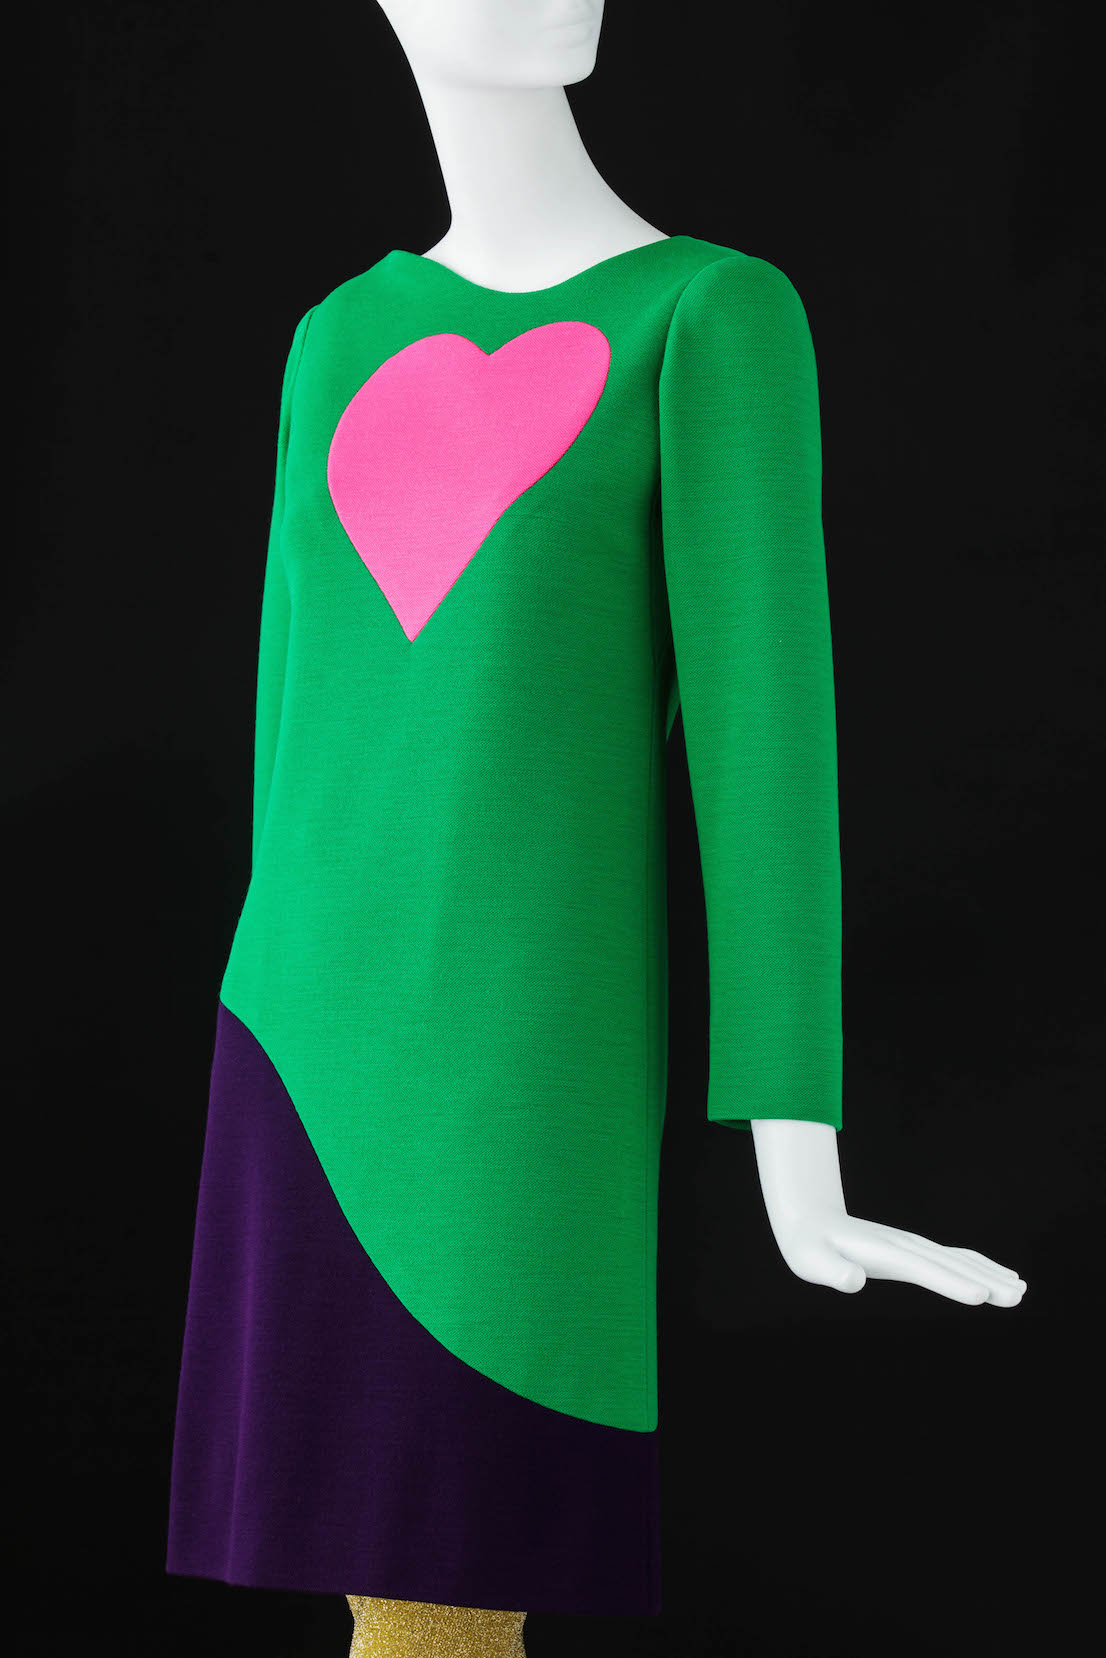 Yves Saint Laurent, Cocktail dress, Fall-Winter 1966. Inspired by Pop Art.